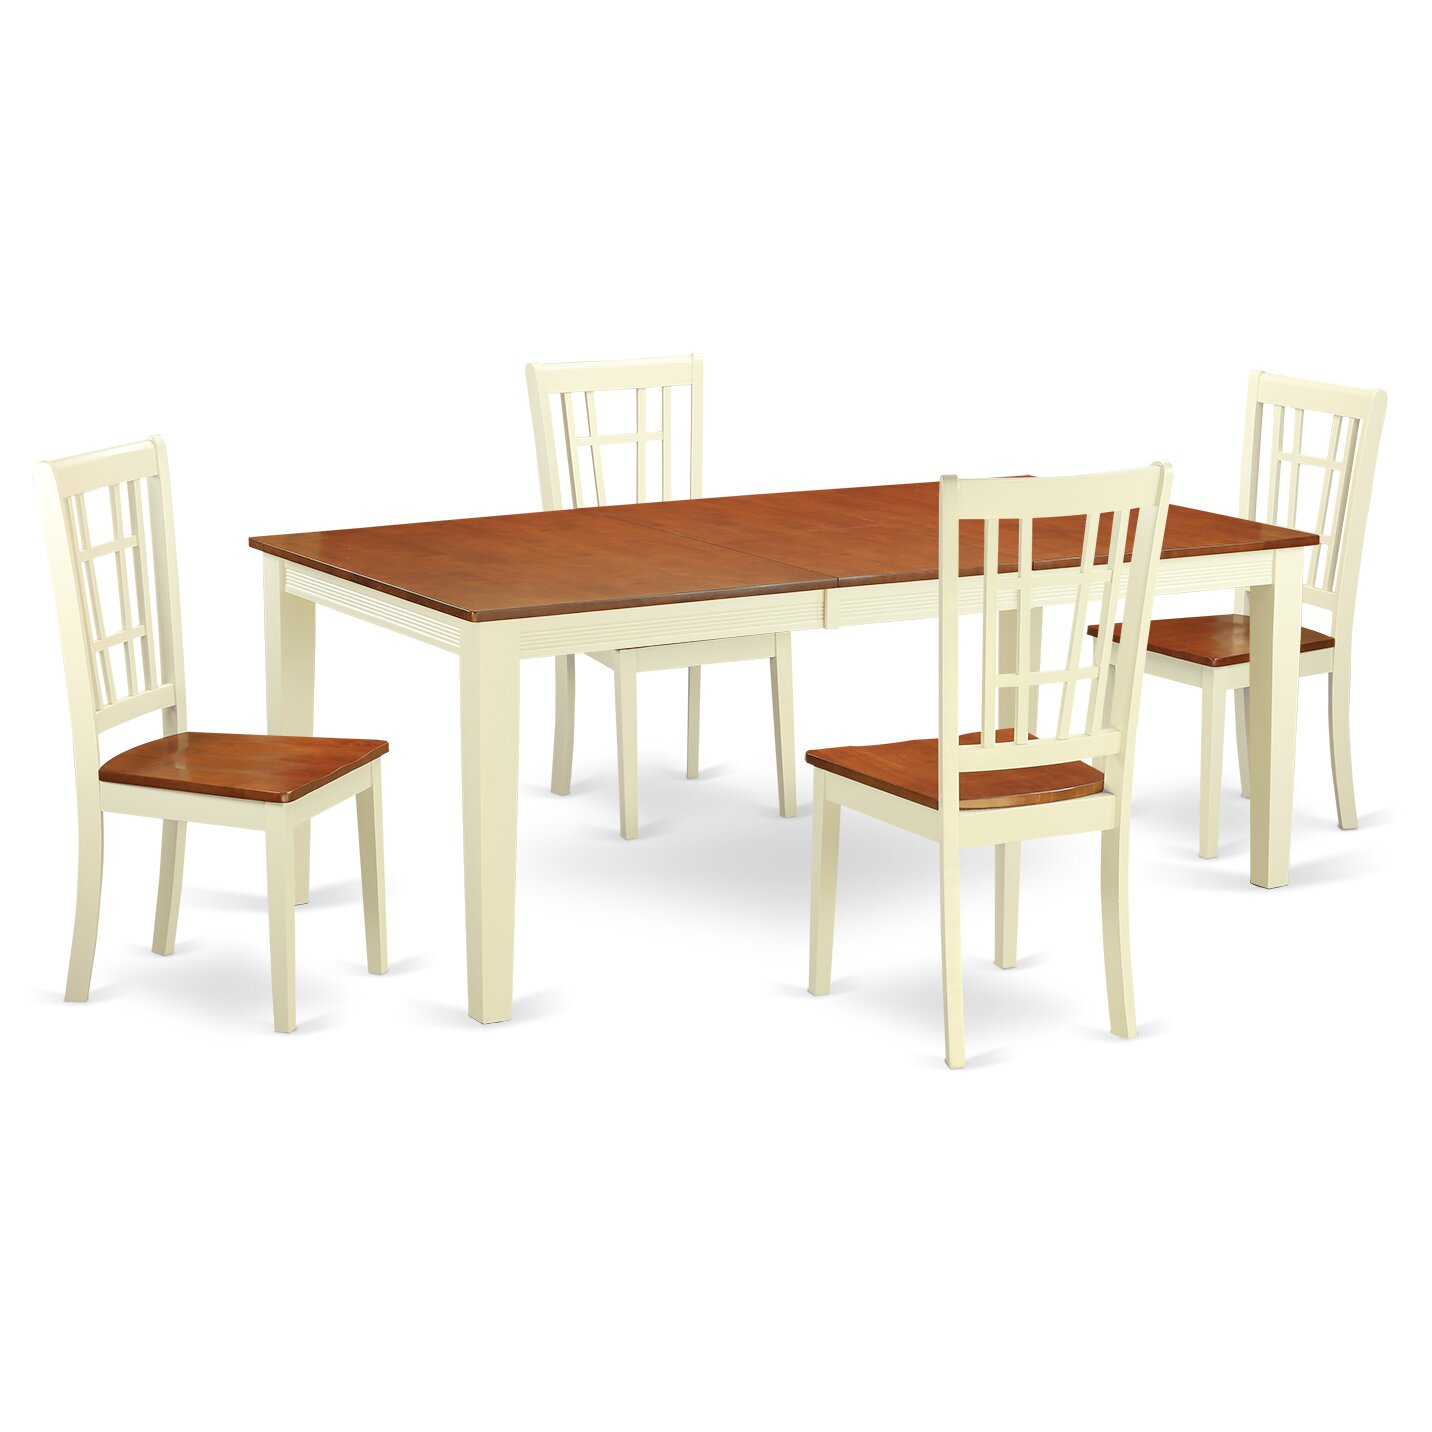 East west quincy 5 piece dining set wayfair for Small kitchen table sets for 4